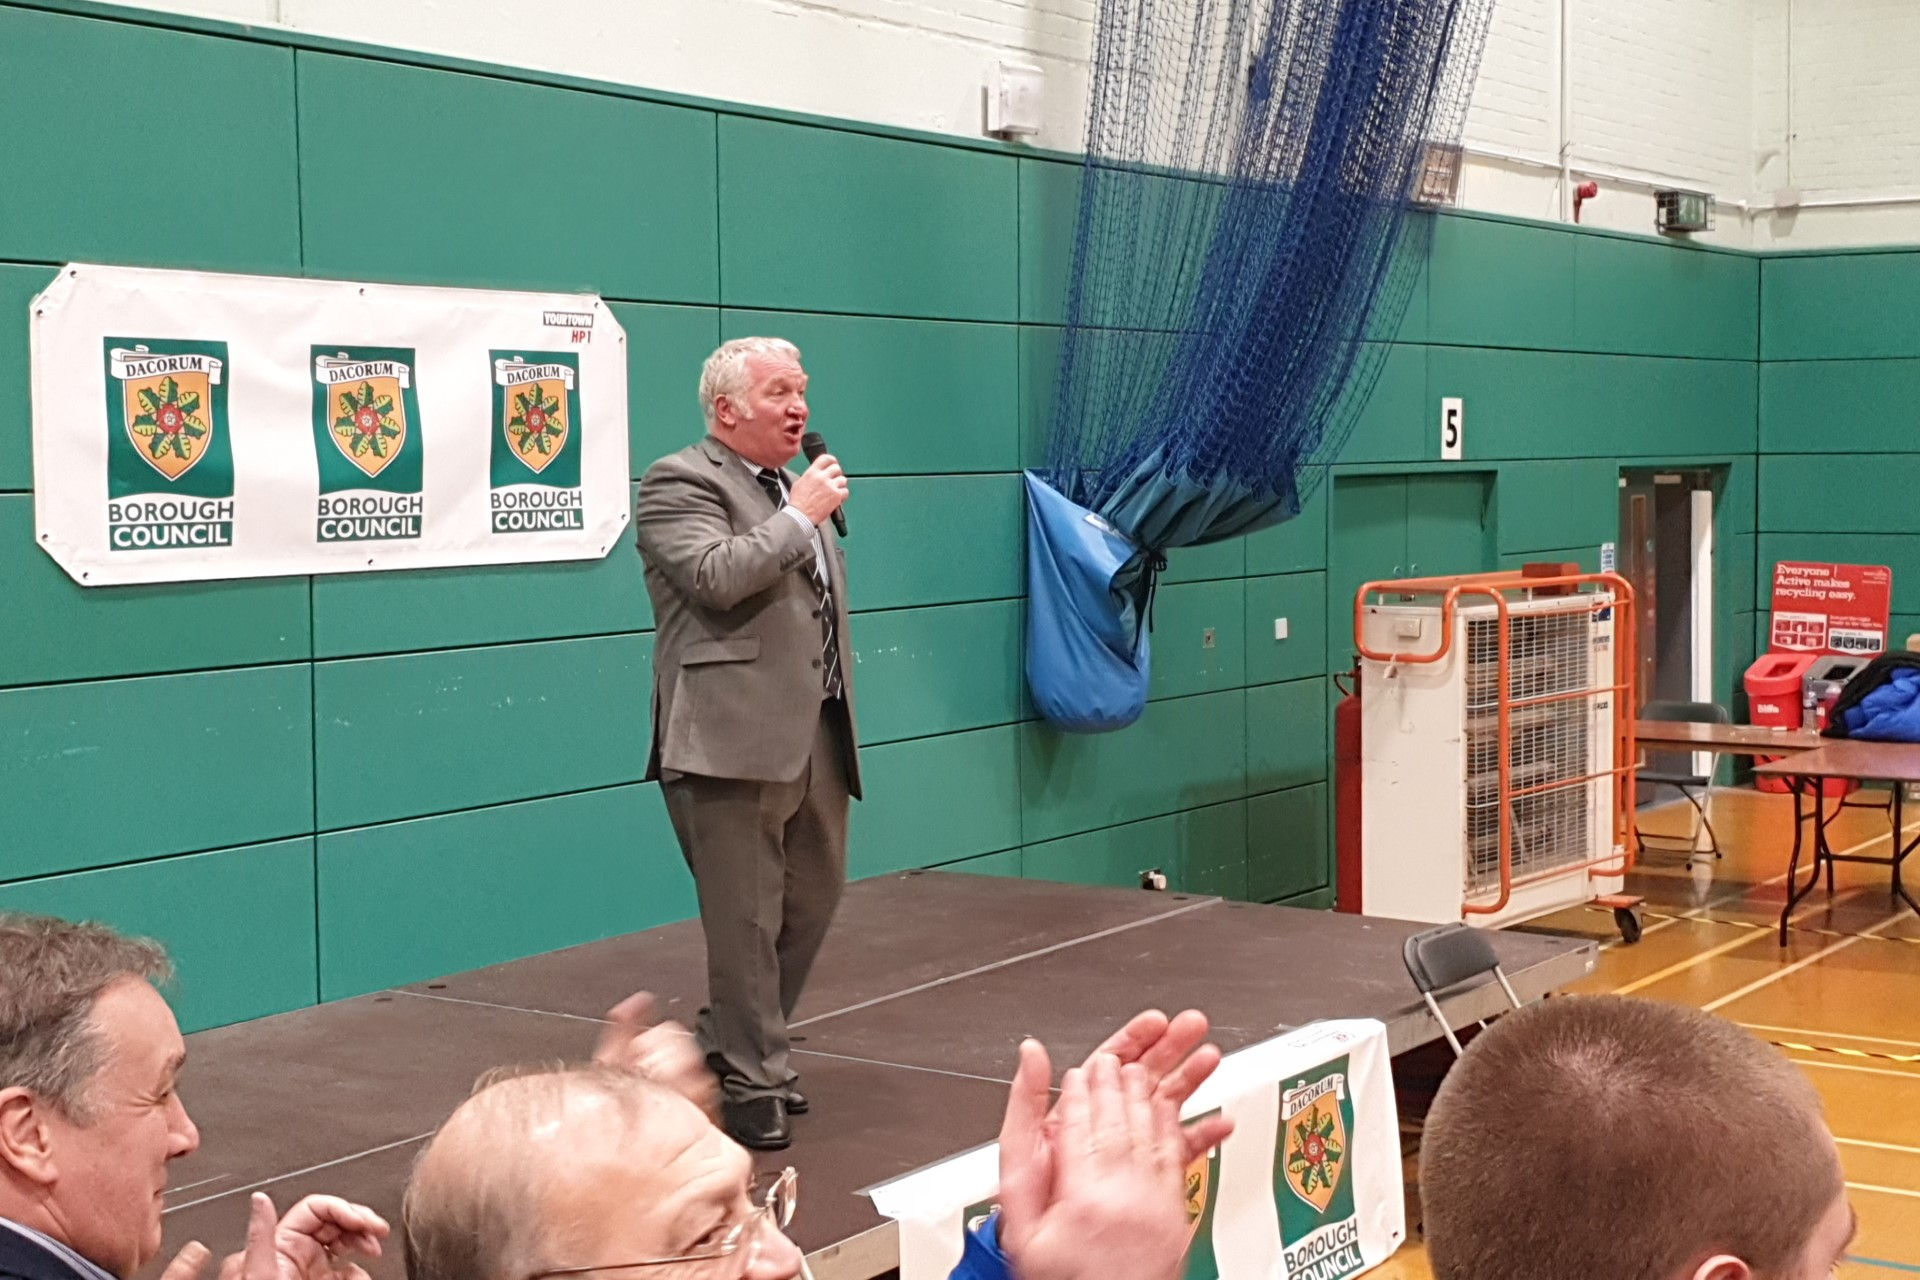 Sir Mike Penning wins general election 2019 for Conservatives in Hemel Hempstead